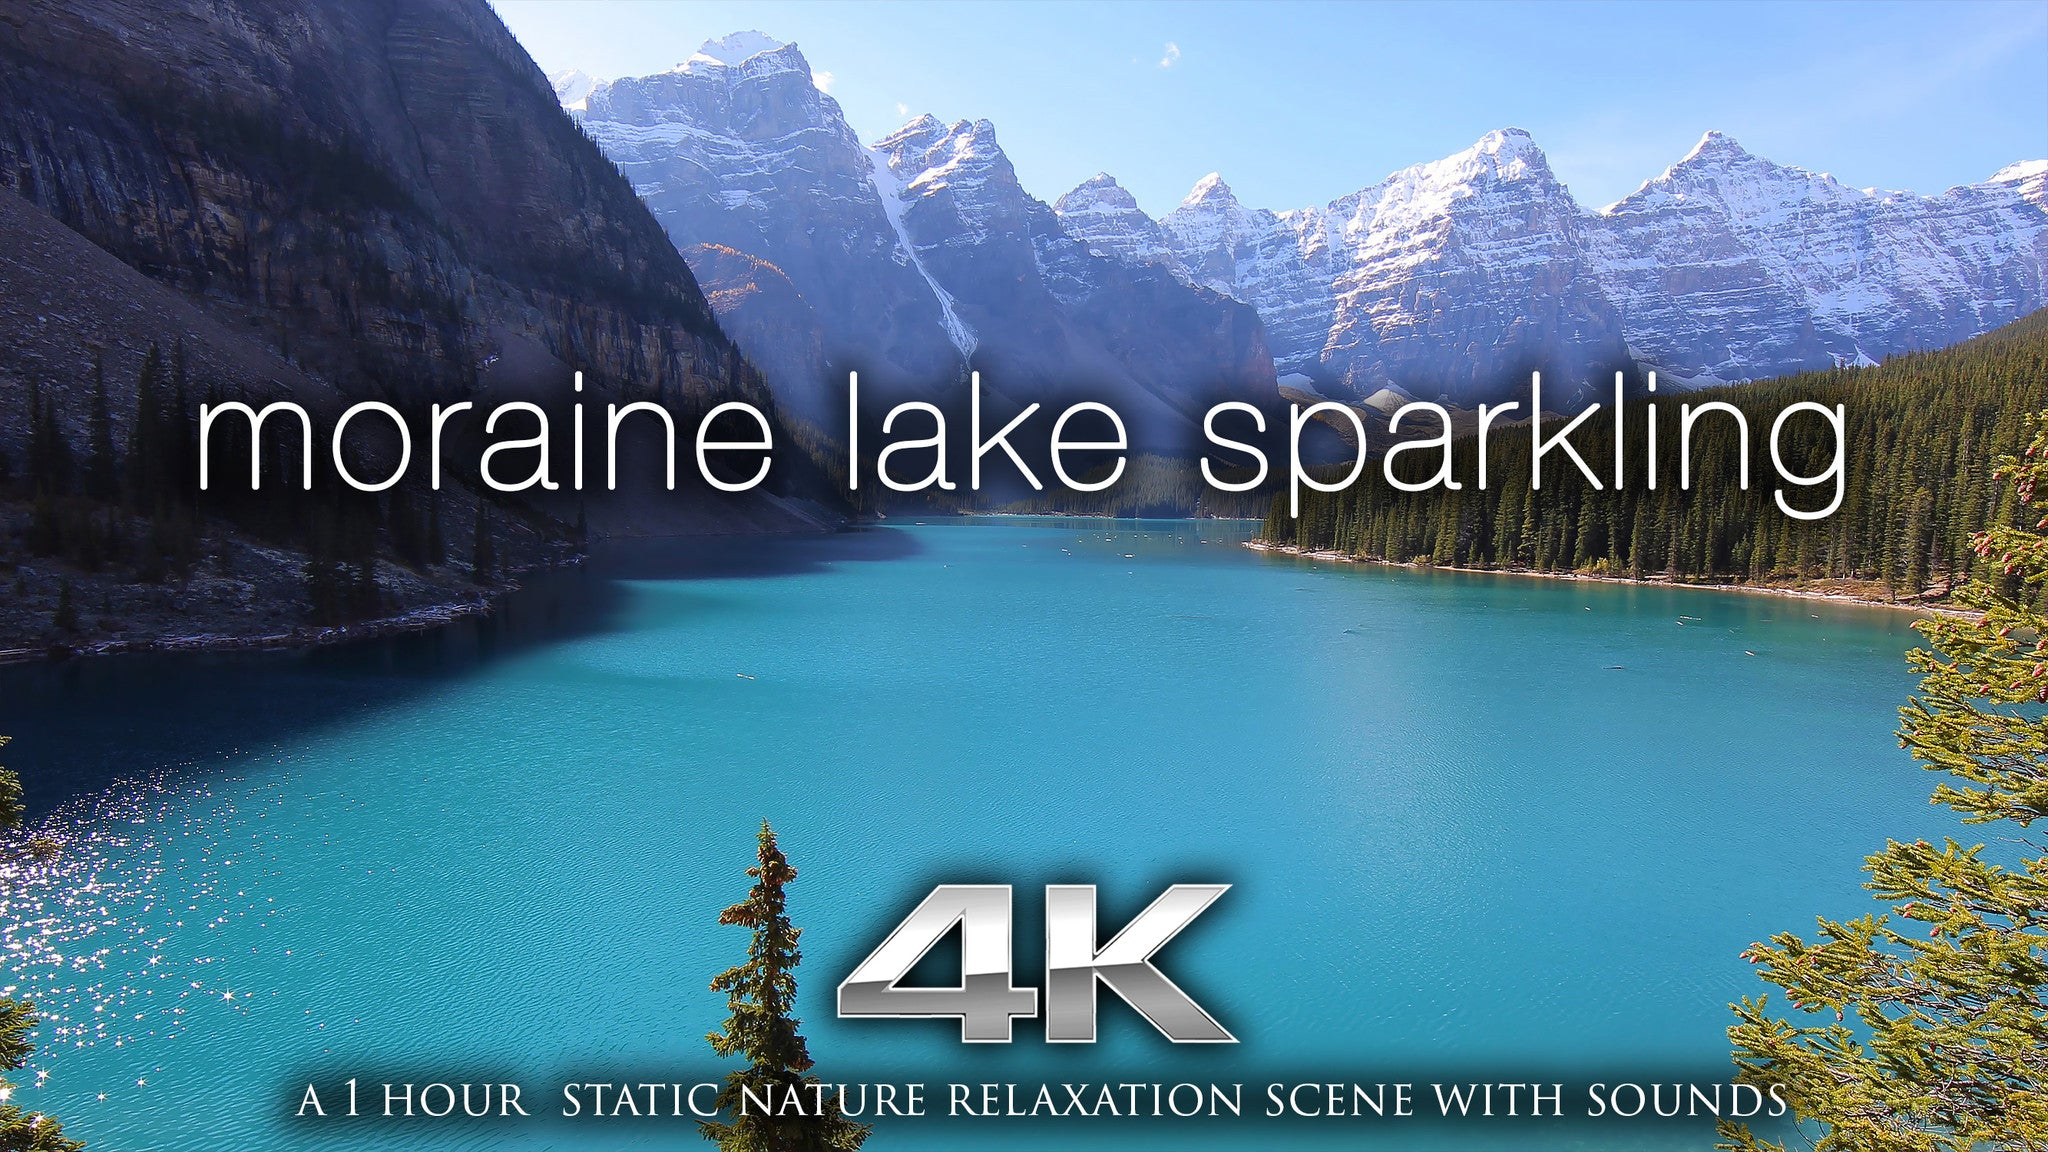 Moraine Lake Sparkling 1hr Static Nature Relaxation Video 4k